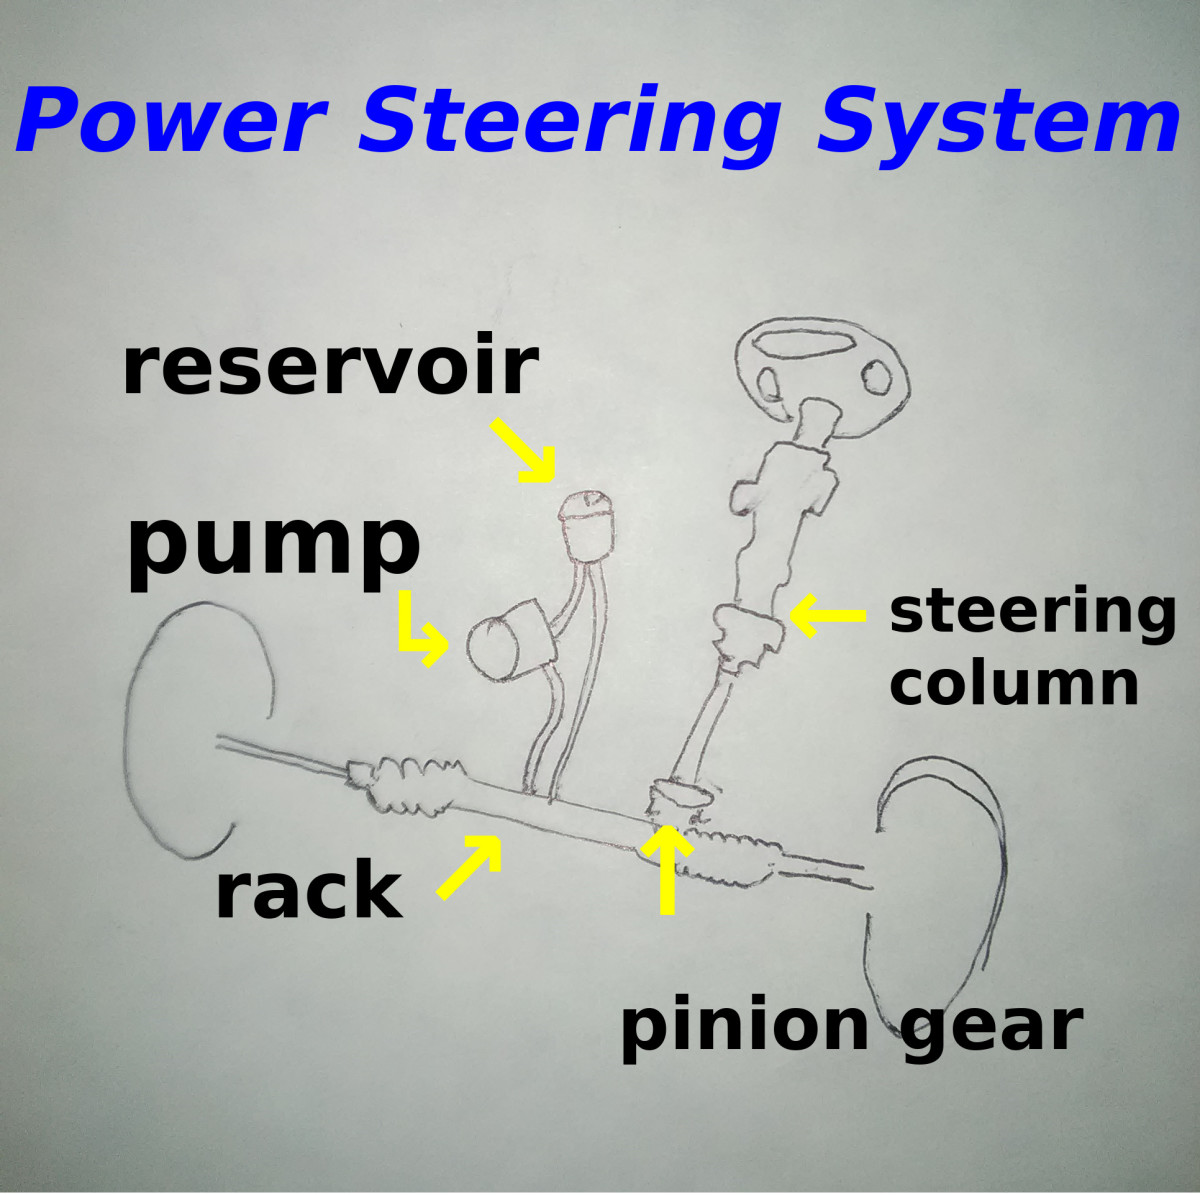 Hoses, seals and steering pump are common leaking points in the power steering system.